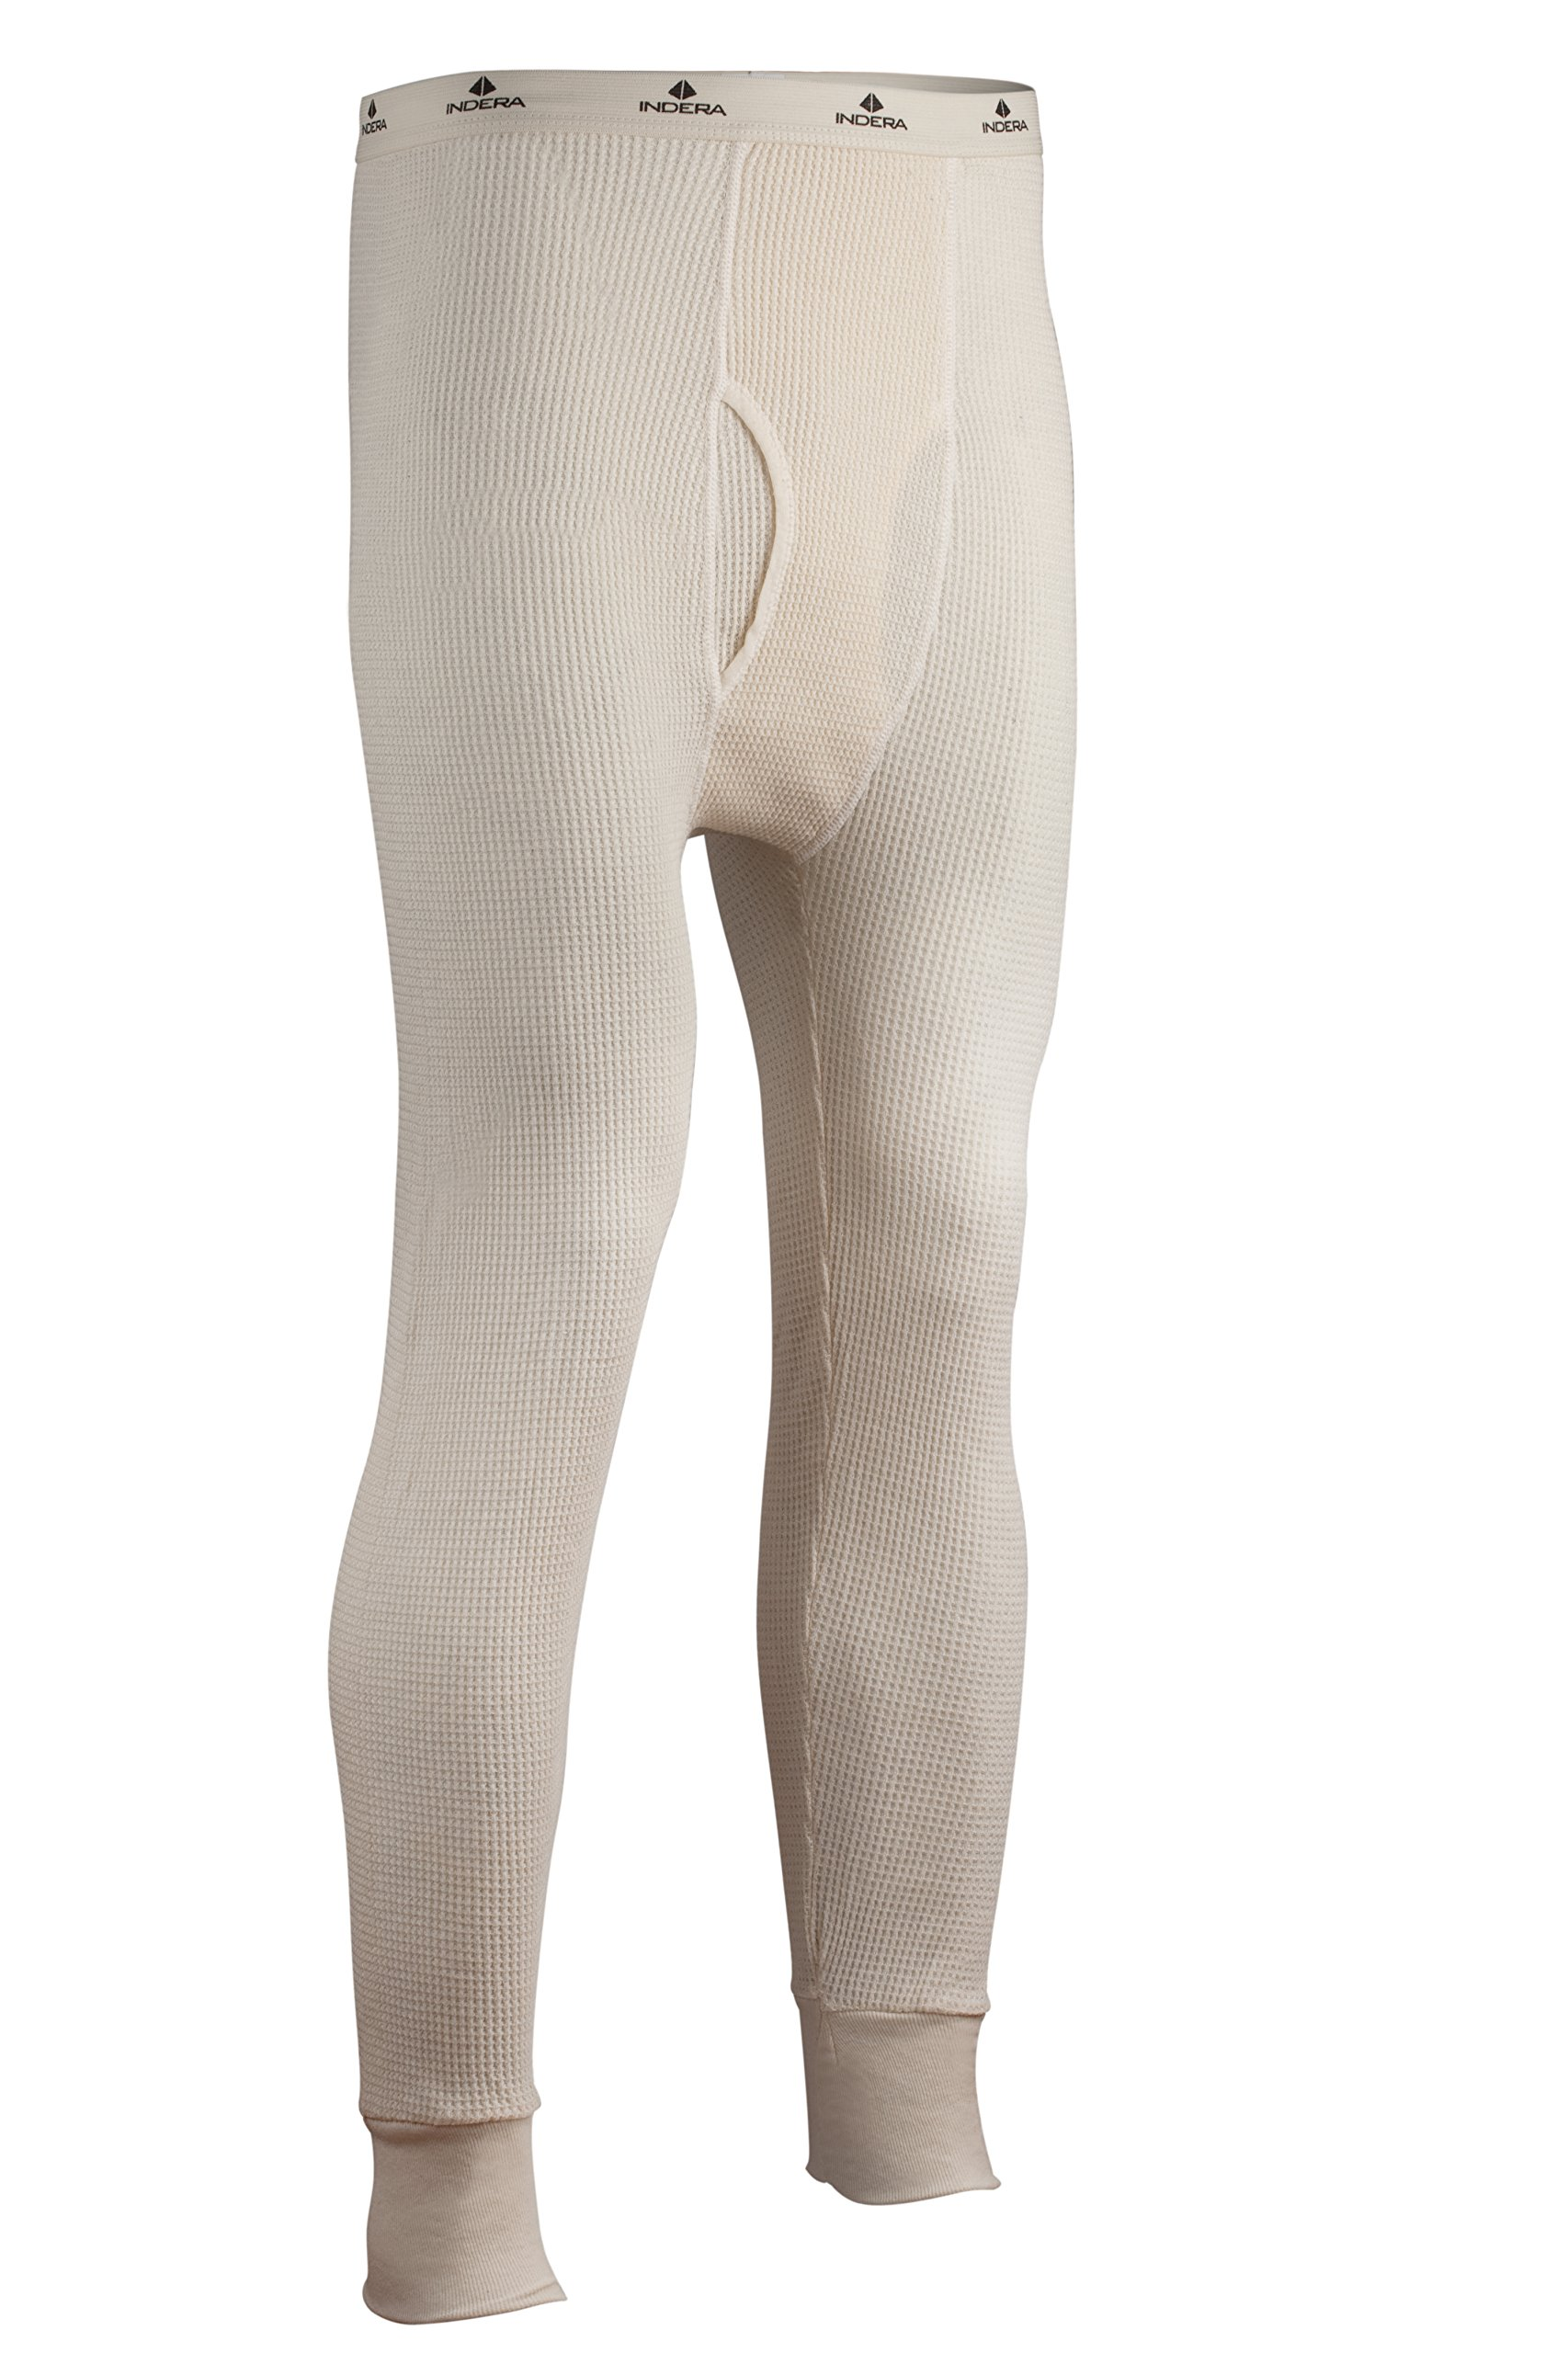 Indera Men's Cotton Waffle Knit Heavyweight Thermal Underwear Pant, Natural, XX-Large